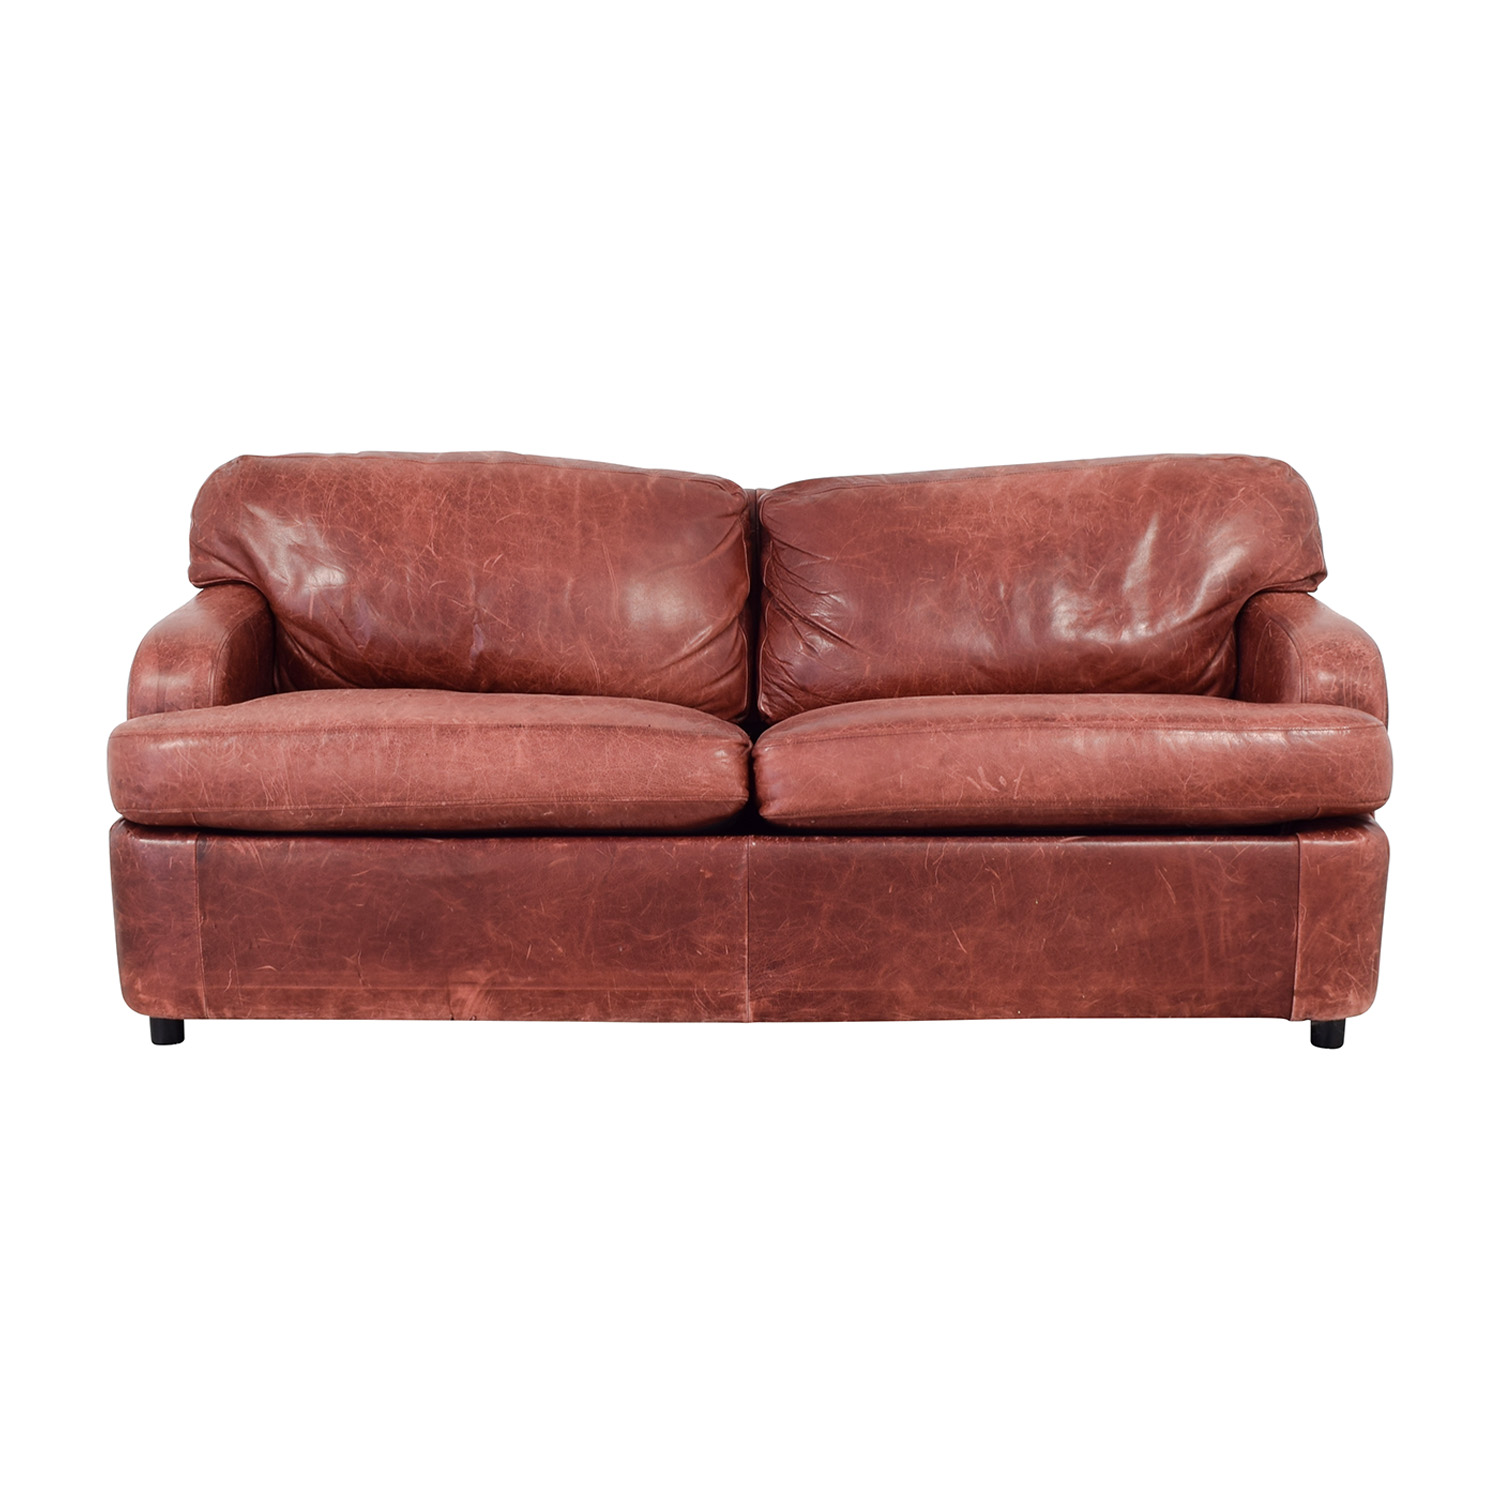 48% OFF - Leather Sleeper Sofa / Sofas